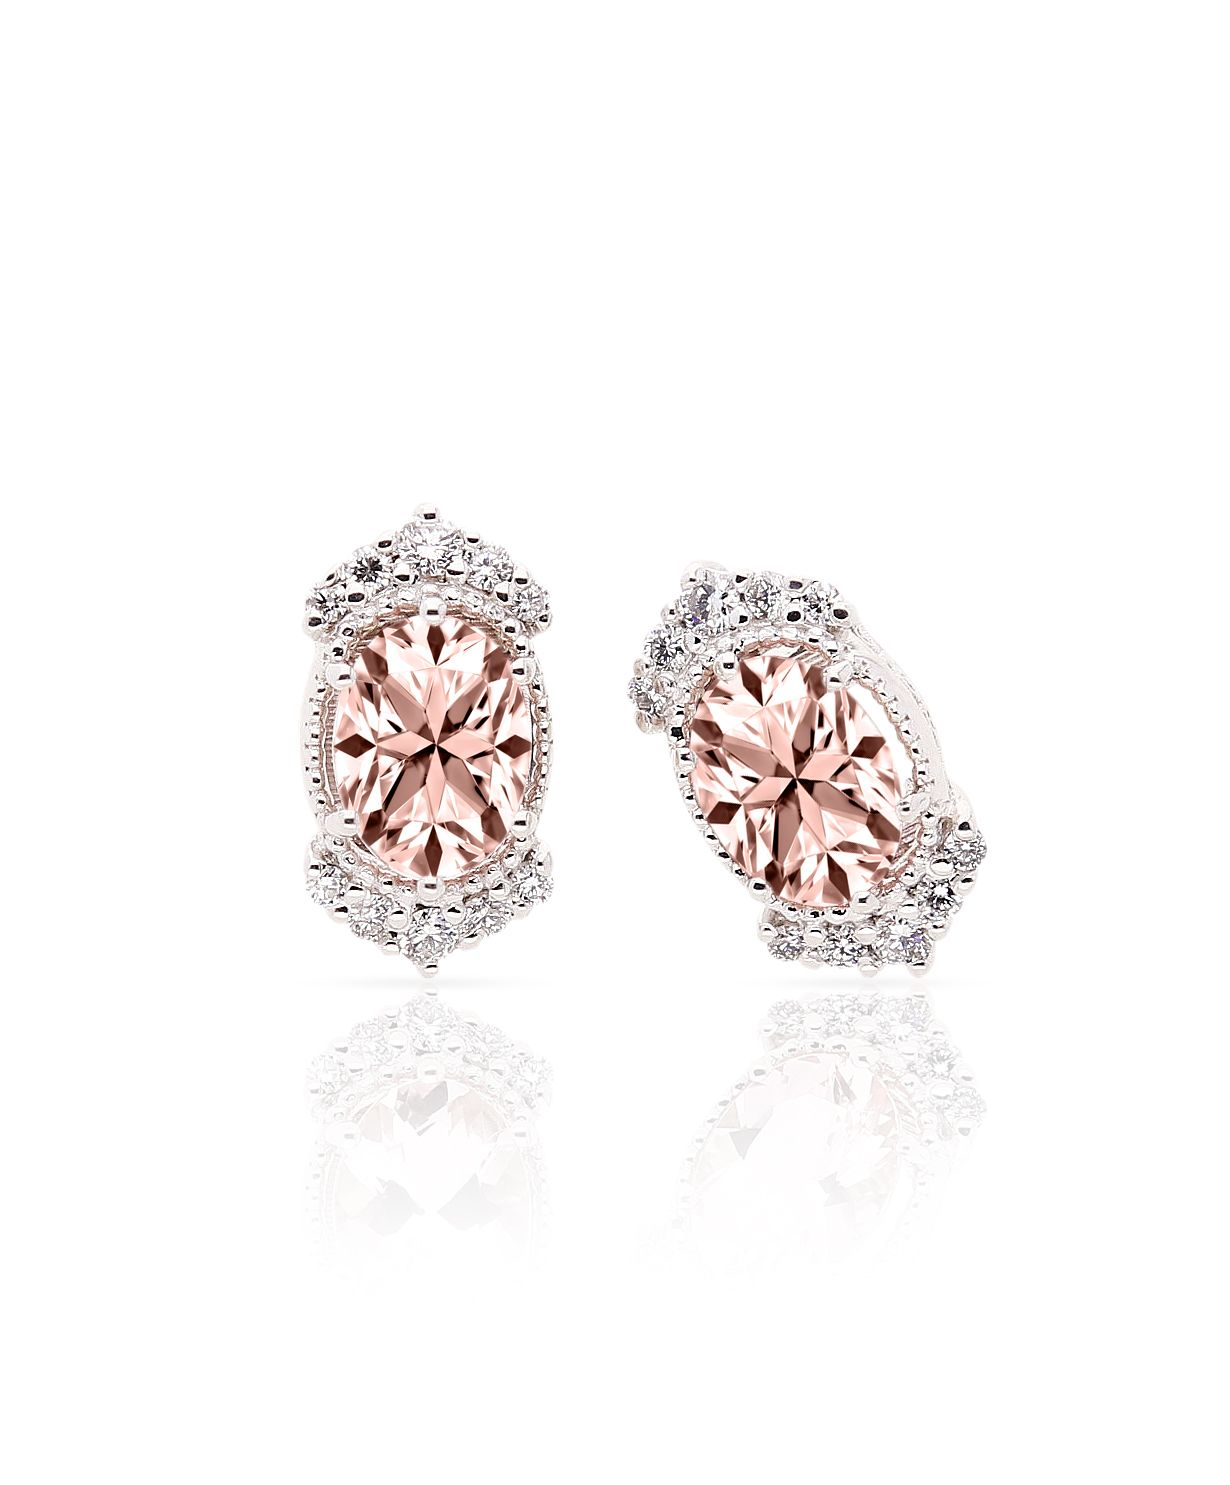 ewbtnsqdpv actual collection diamond jewelry quadrillion earrings fine products